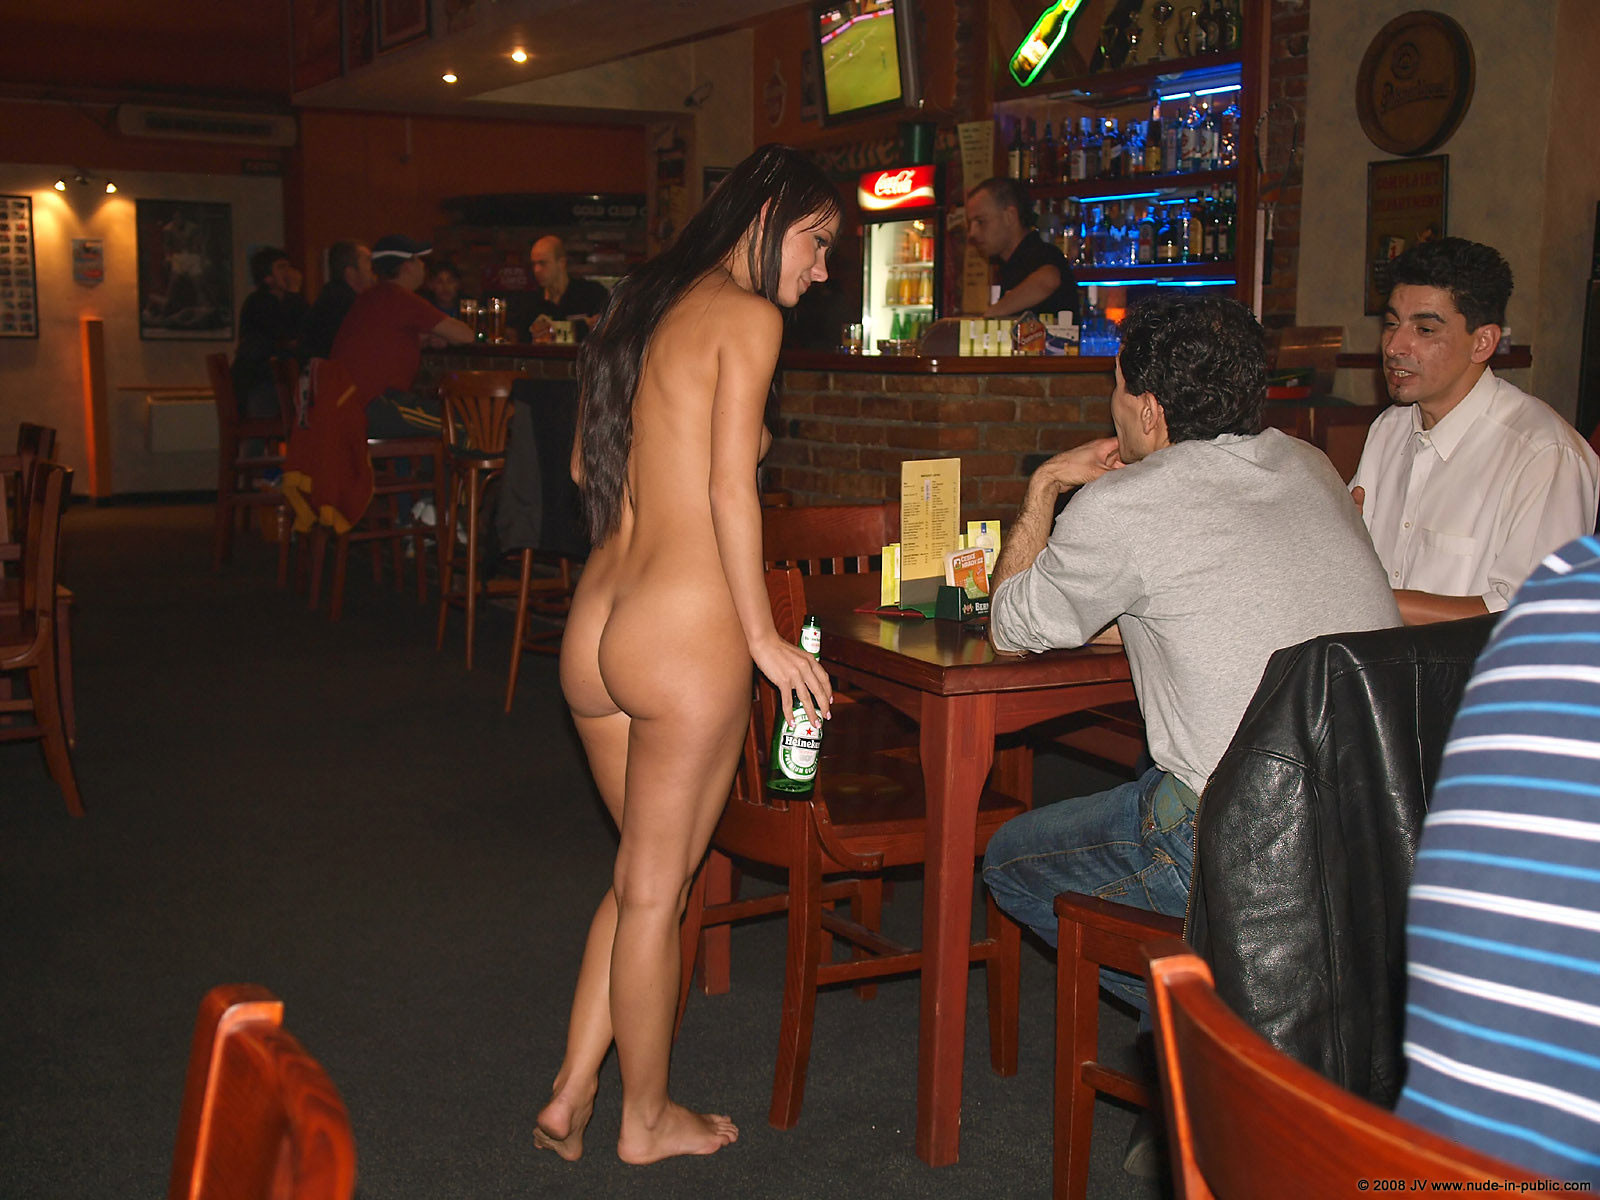 melisa-pub-beer-bar-girl-nude-in-public-41